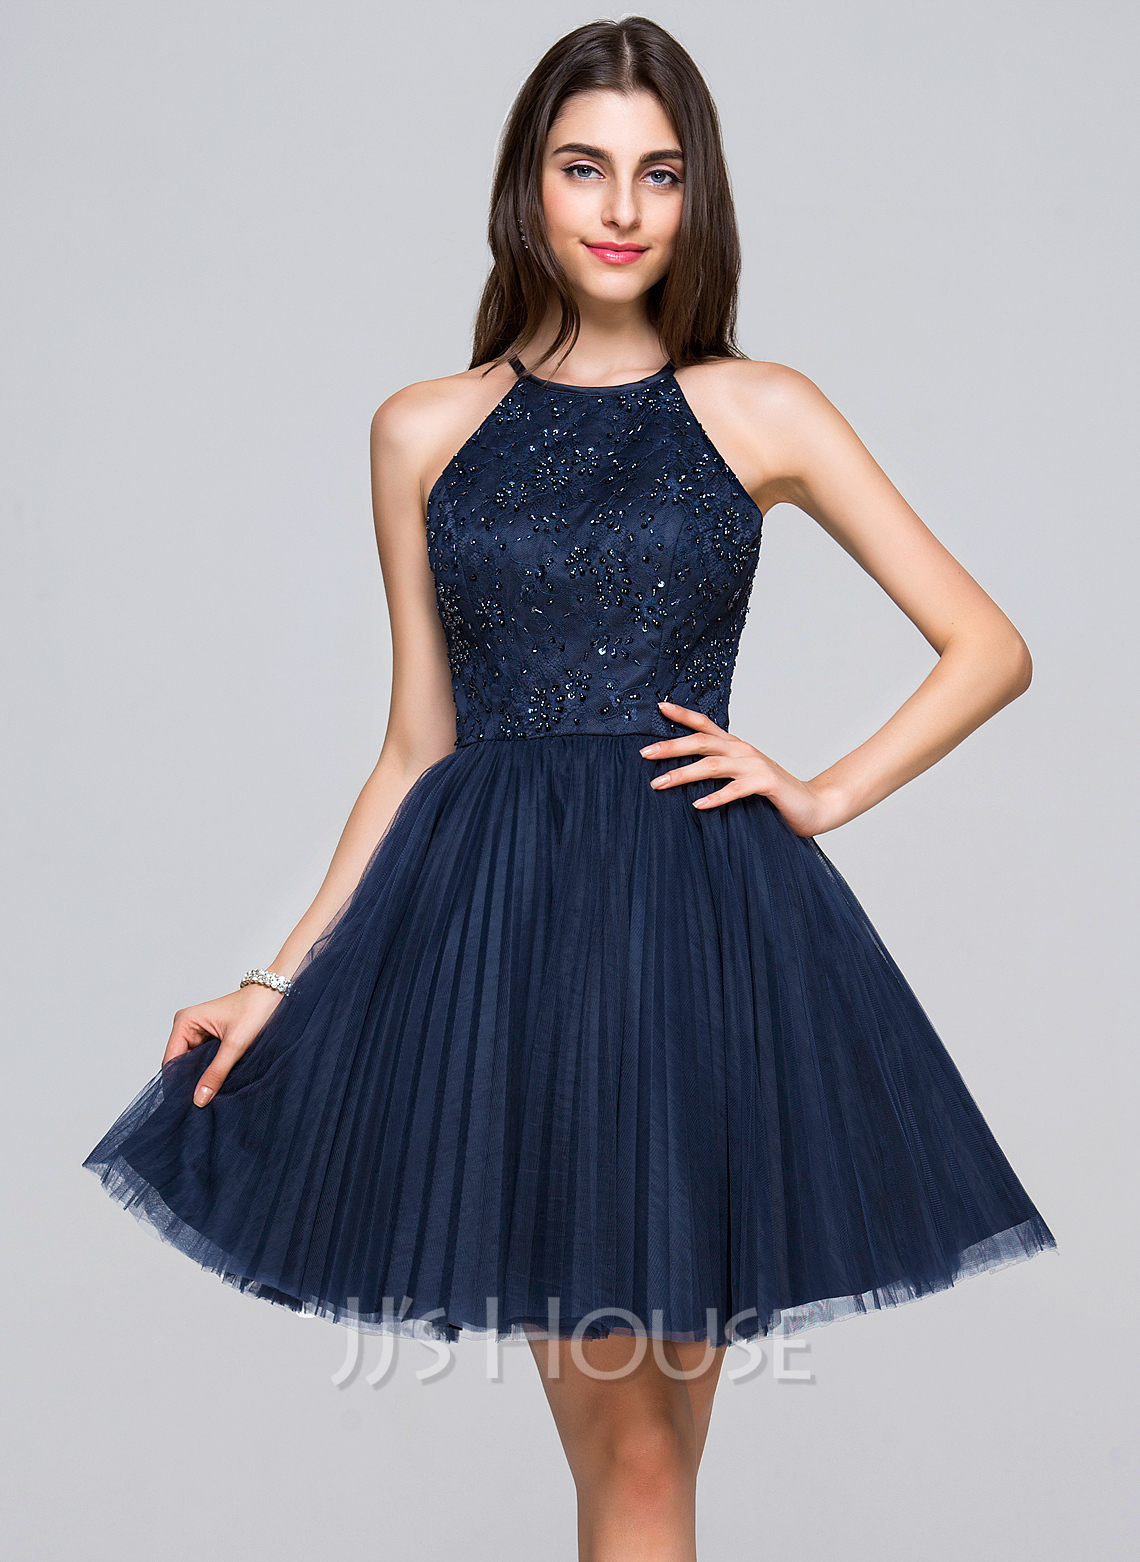 ALinePrincess Scoop Neck ShortMini Tulle Lace Homecoming Dress With Beading Sequins Bows